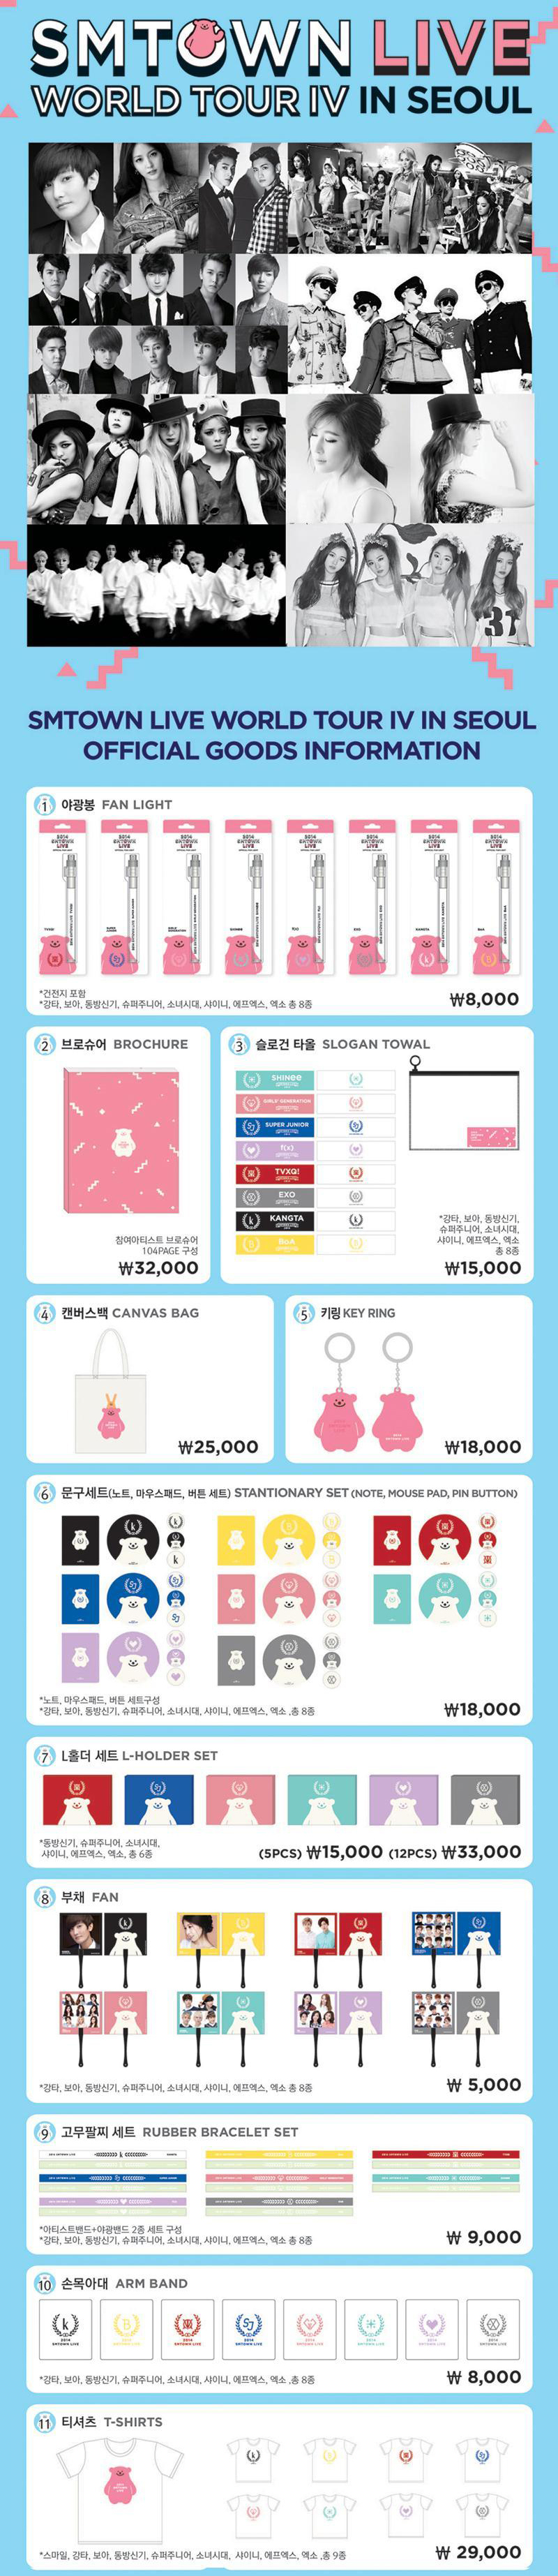 SMTOWN LIVE WORLD TOUR IV IN SEOUL OFFICIAL GOODS